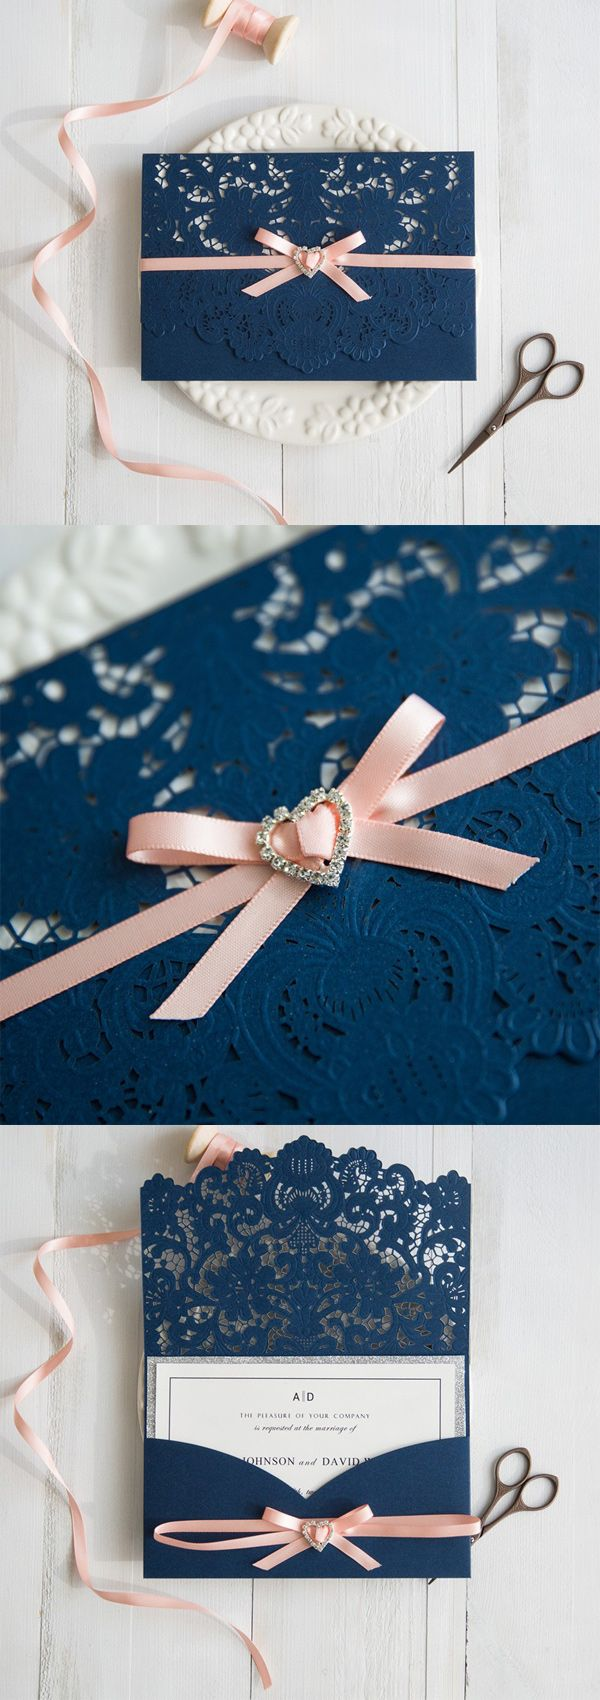 Best 25+ Blue wedding invitations ideas on Pinterest | Wedding ...